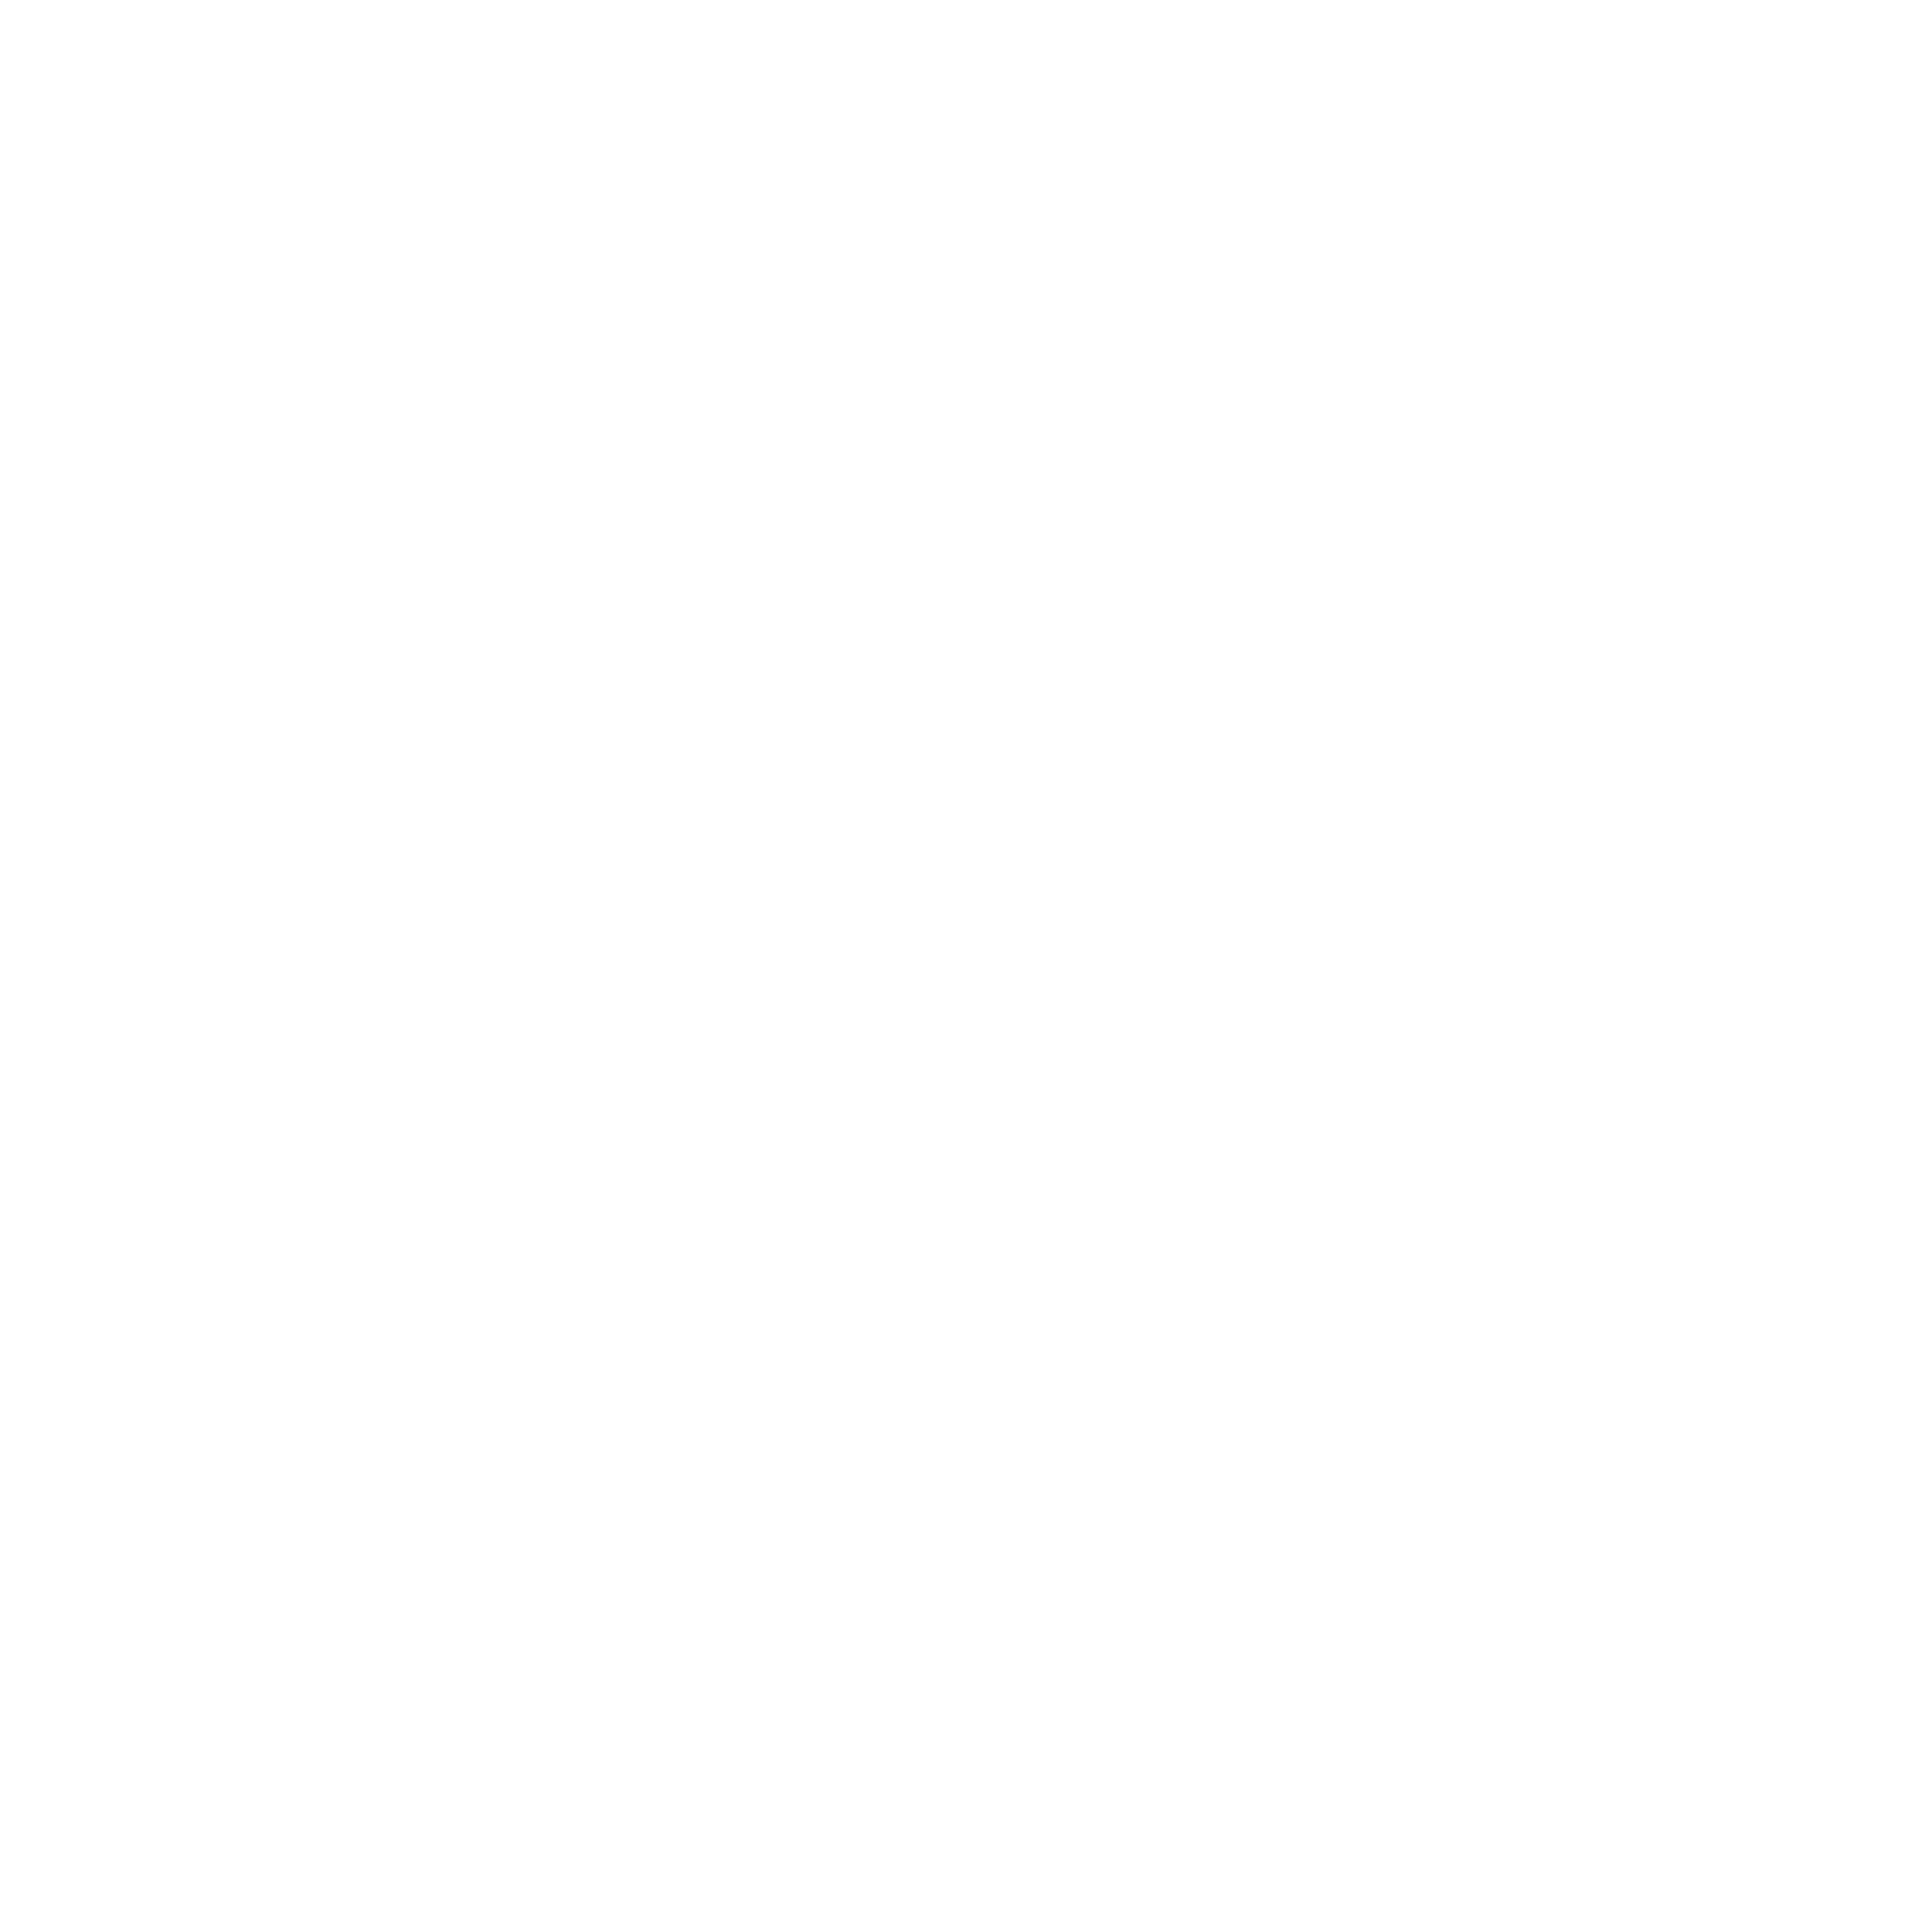 Louise Byrne Music